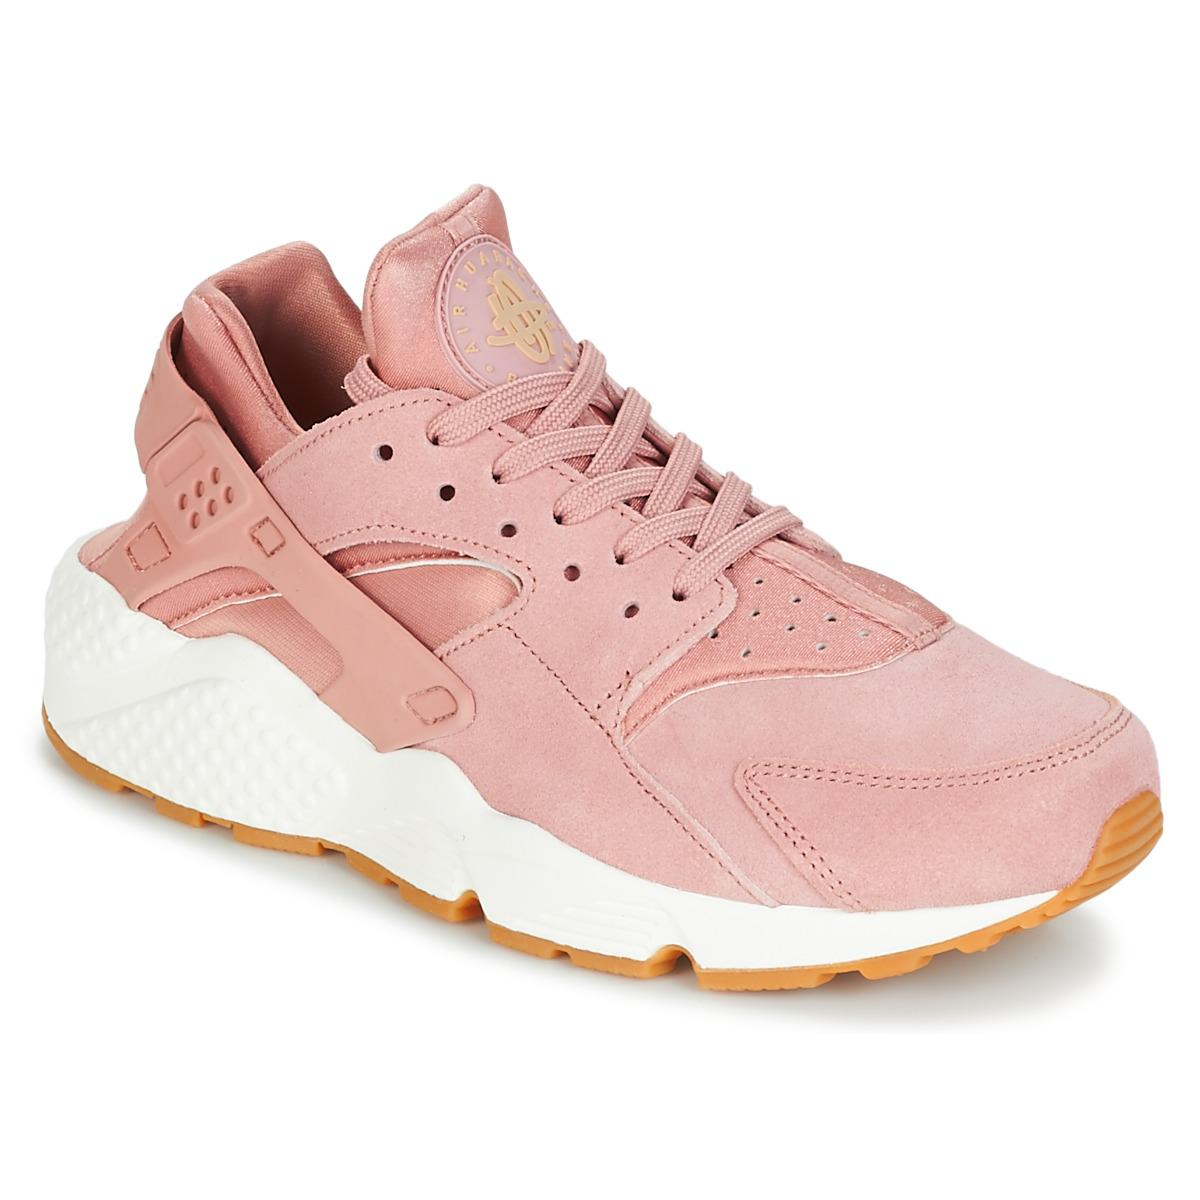 14a87f4ff46 Nike Air Huarache Run Sd W Women s Shoes (trainers) In Pink in Pink ...